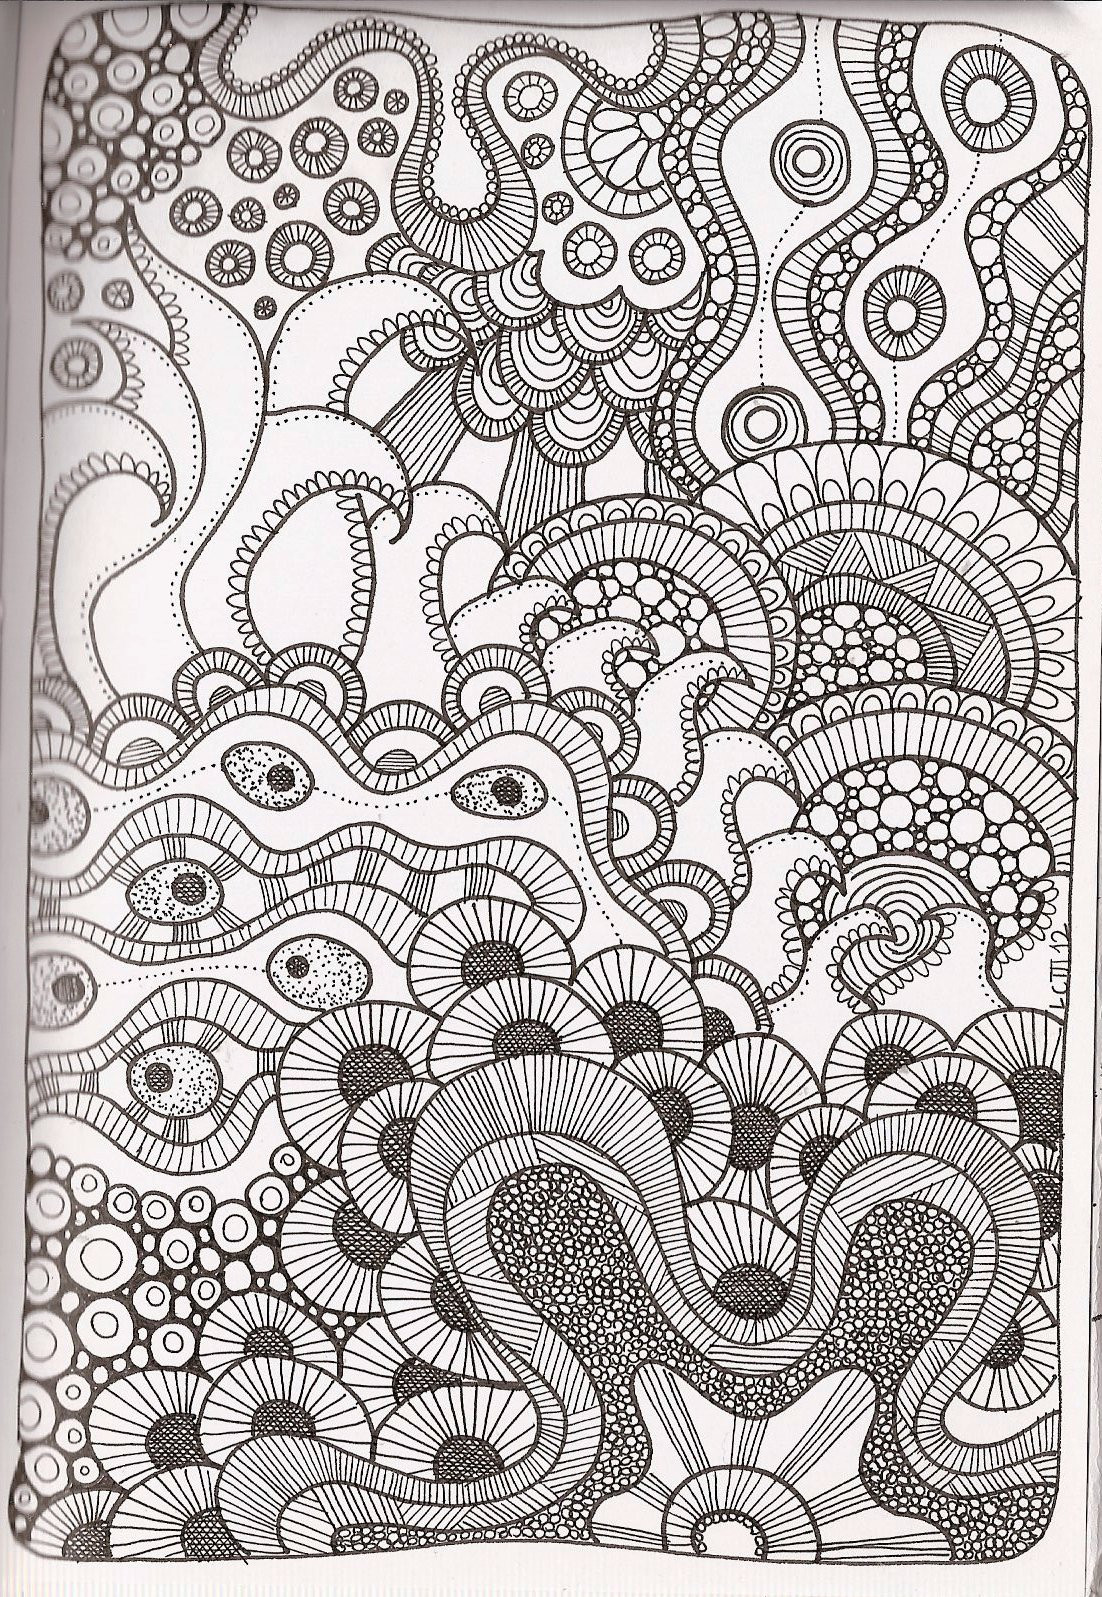 Coloring Patterns For Kids  Free Printable Zentangle Coloring Pages for Adults